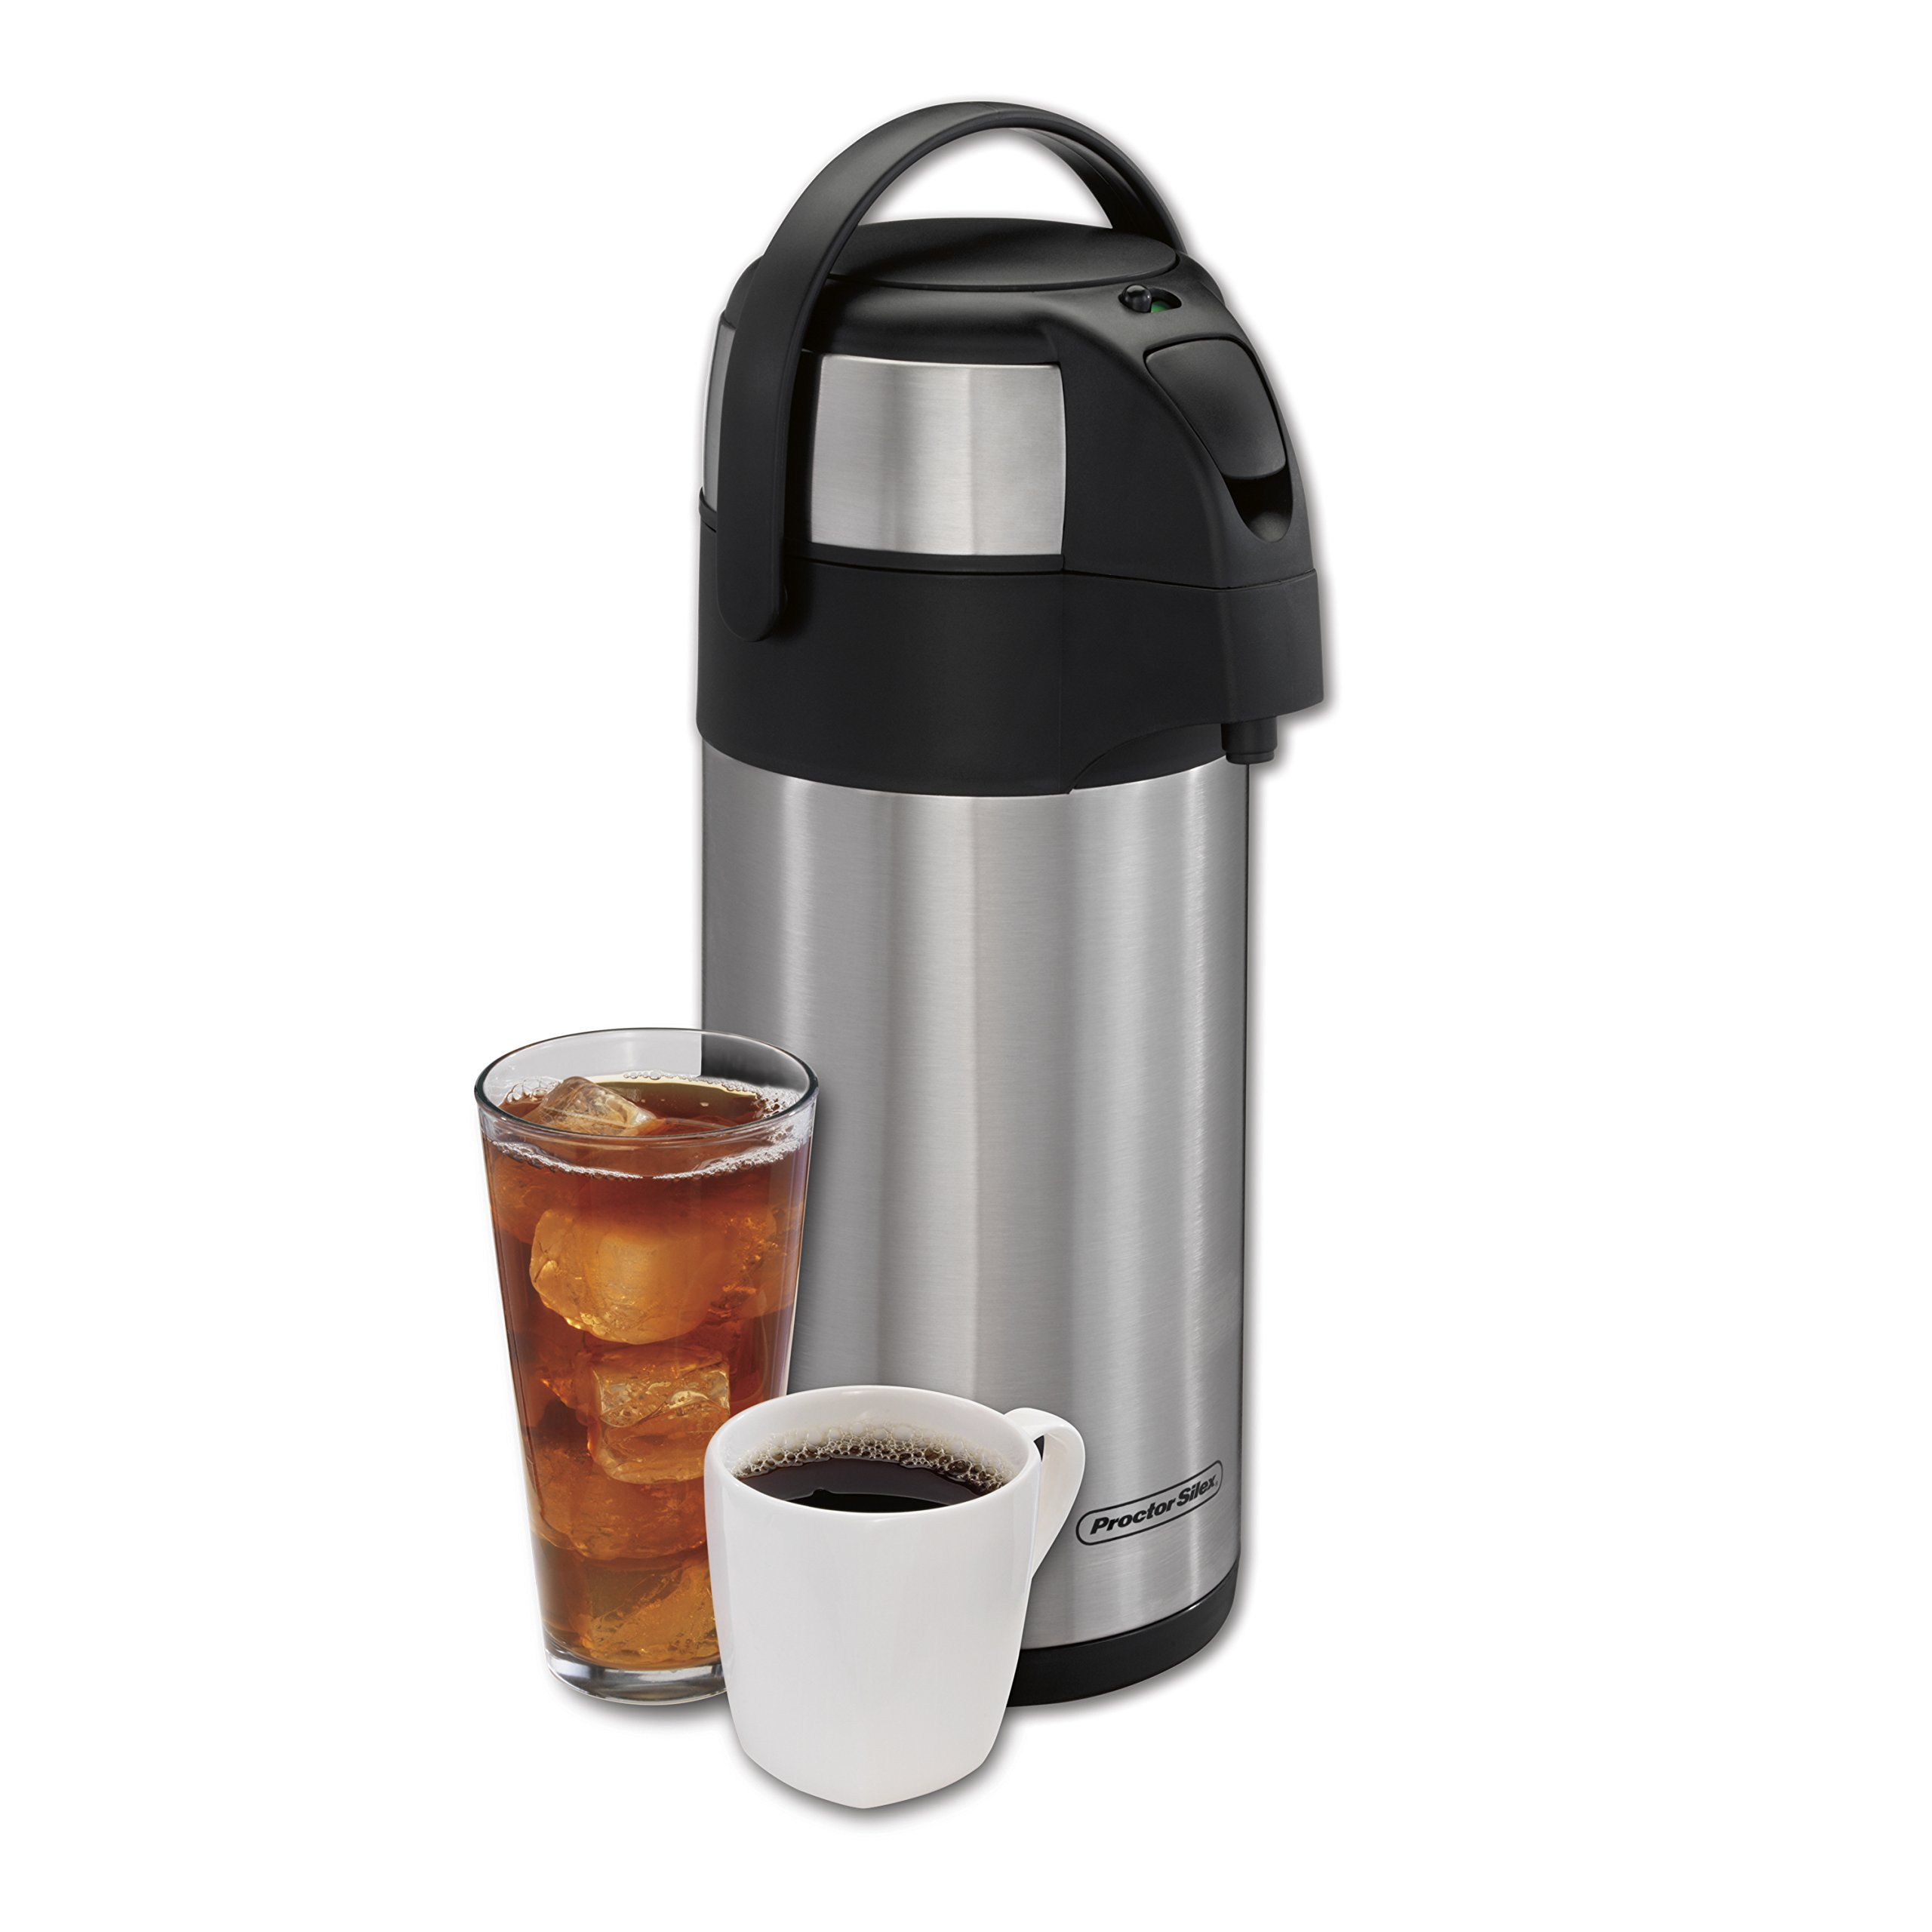 Proctor Silex 40411 Thermal Airpot Hot Coffee Cold Beverage Dispenser with Pump, Vacuum Insulated, Compact and Portable, 3 Liter, Stainless Steel by Proctor Silex